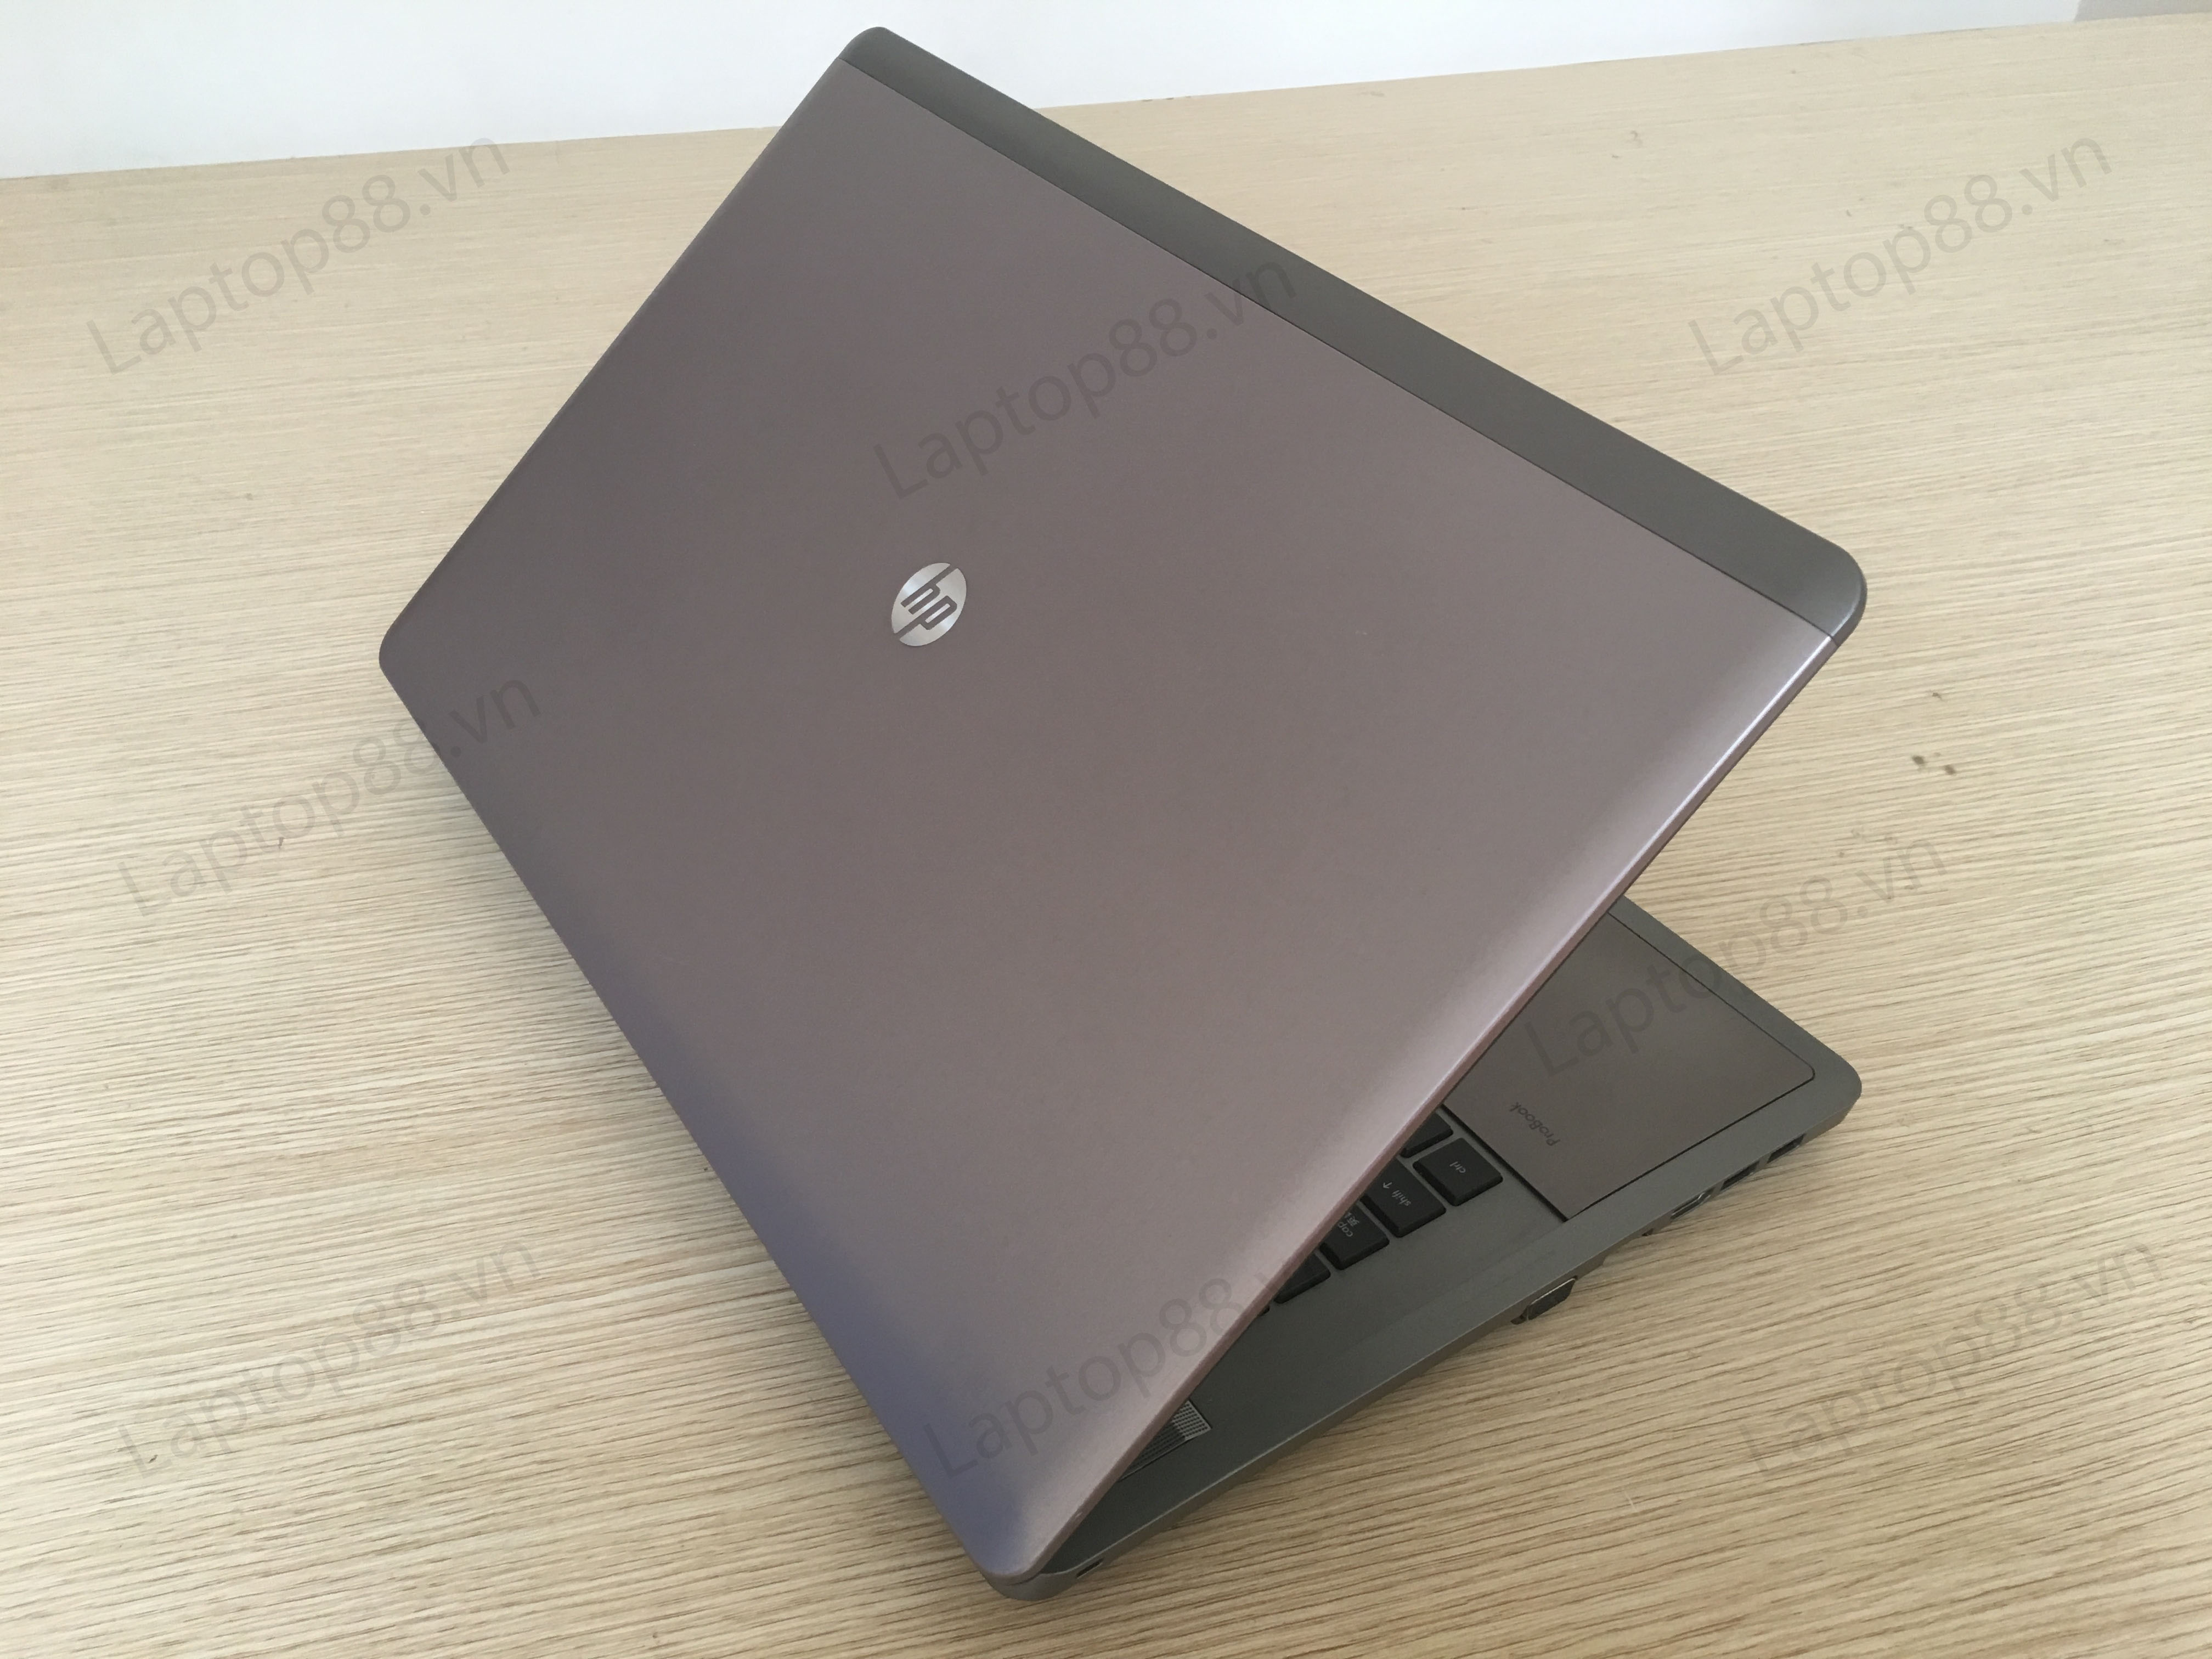 Laptop HP Probook 4740s ( Core i5 3210M, Intel HD Graphics 4000 and AMD RadeonHD 7650M with 1GB vRAM, RAM 4GB, HDD 250GB, 17,3 inch HD+ chống chói)